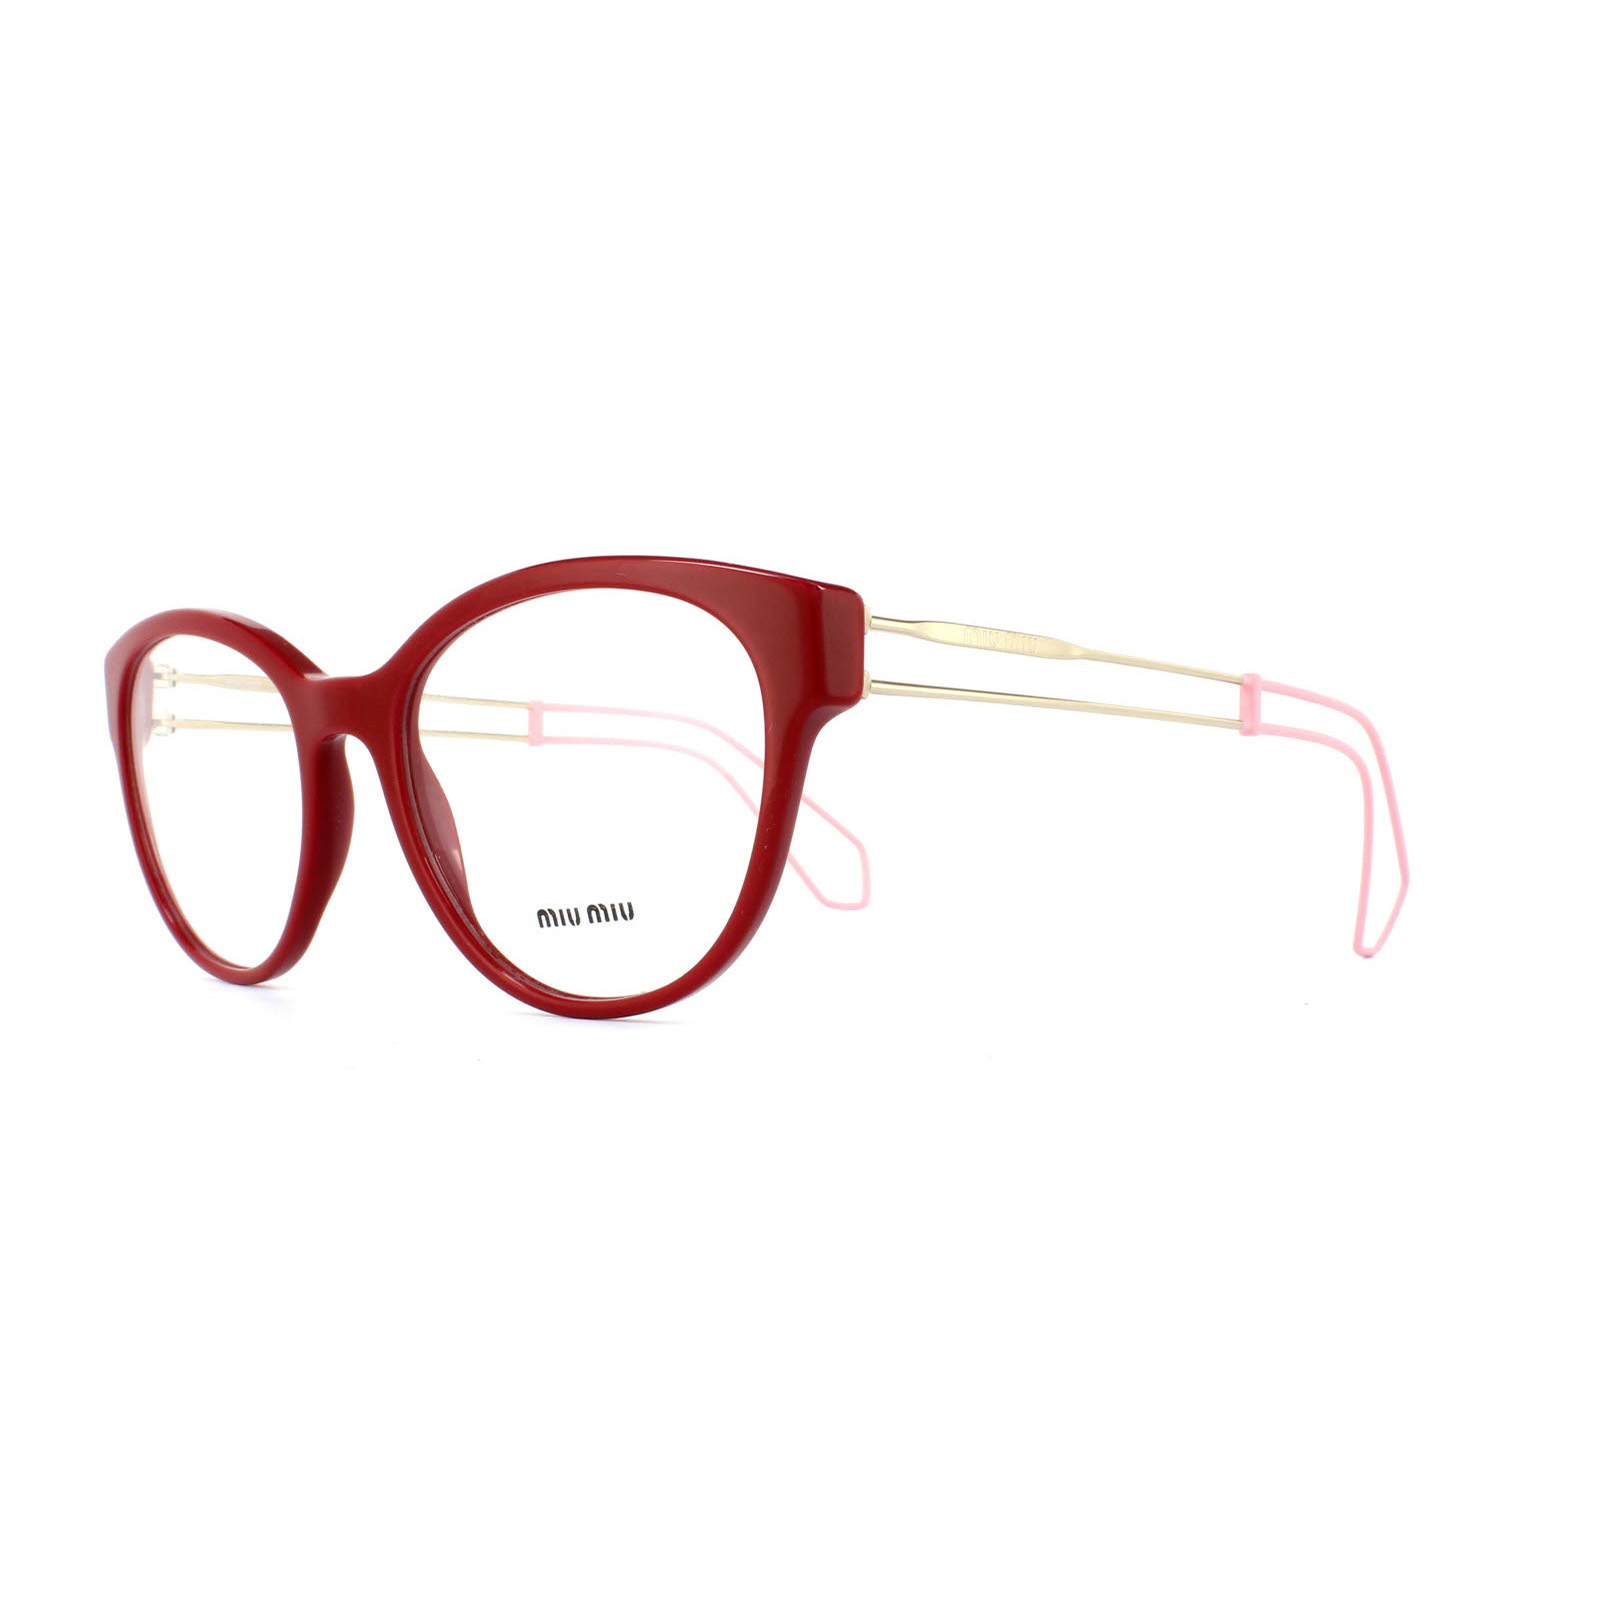 9dfb387b36cb Cheap Miu Miu 03PV Glasses Frames - Discounted Sunglasses